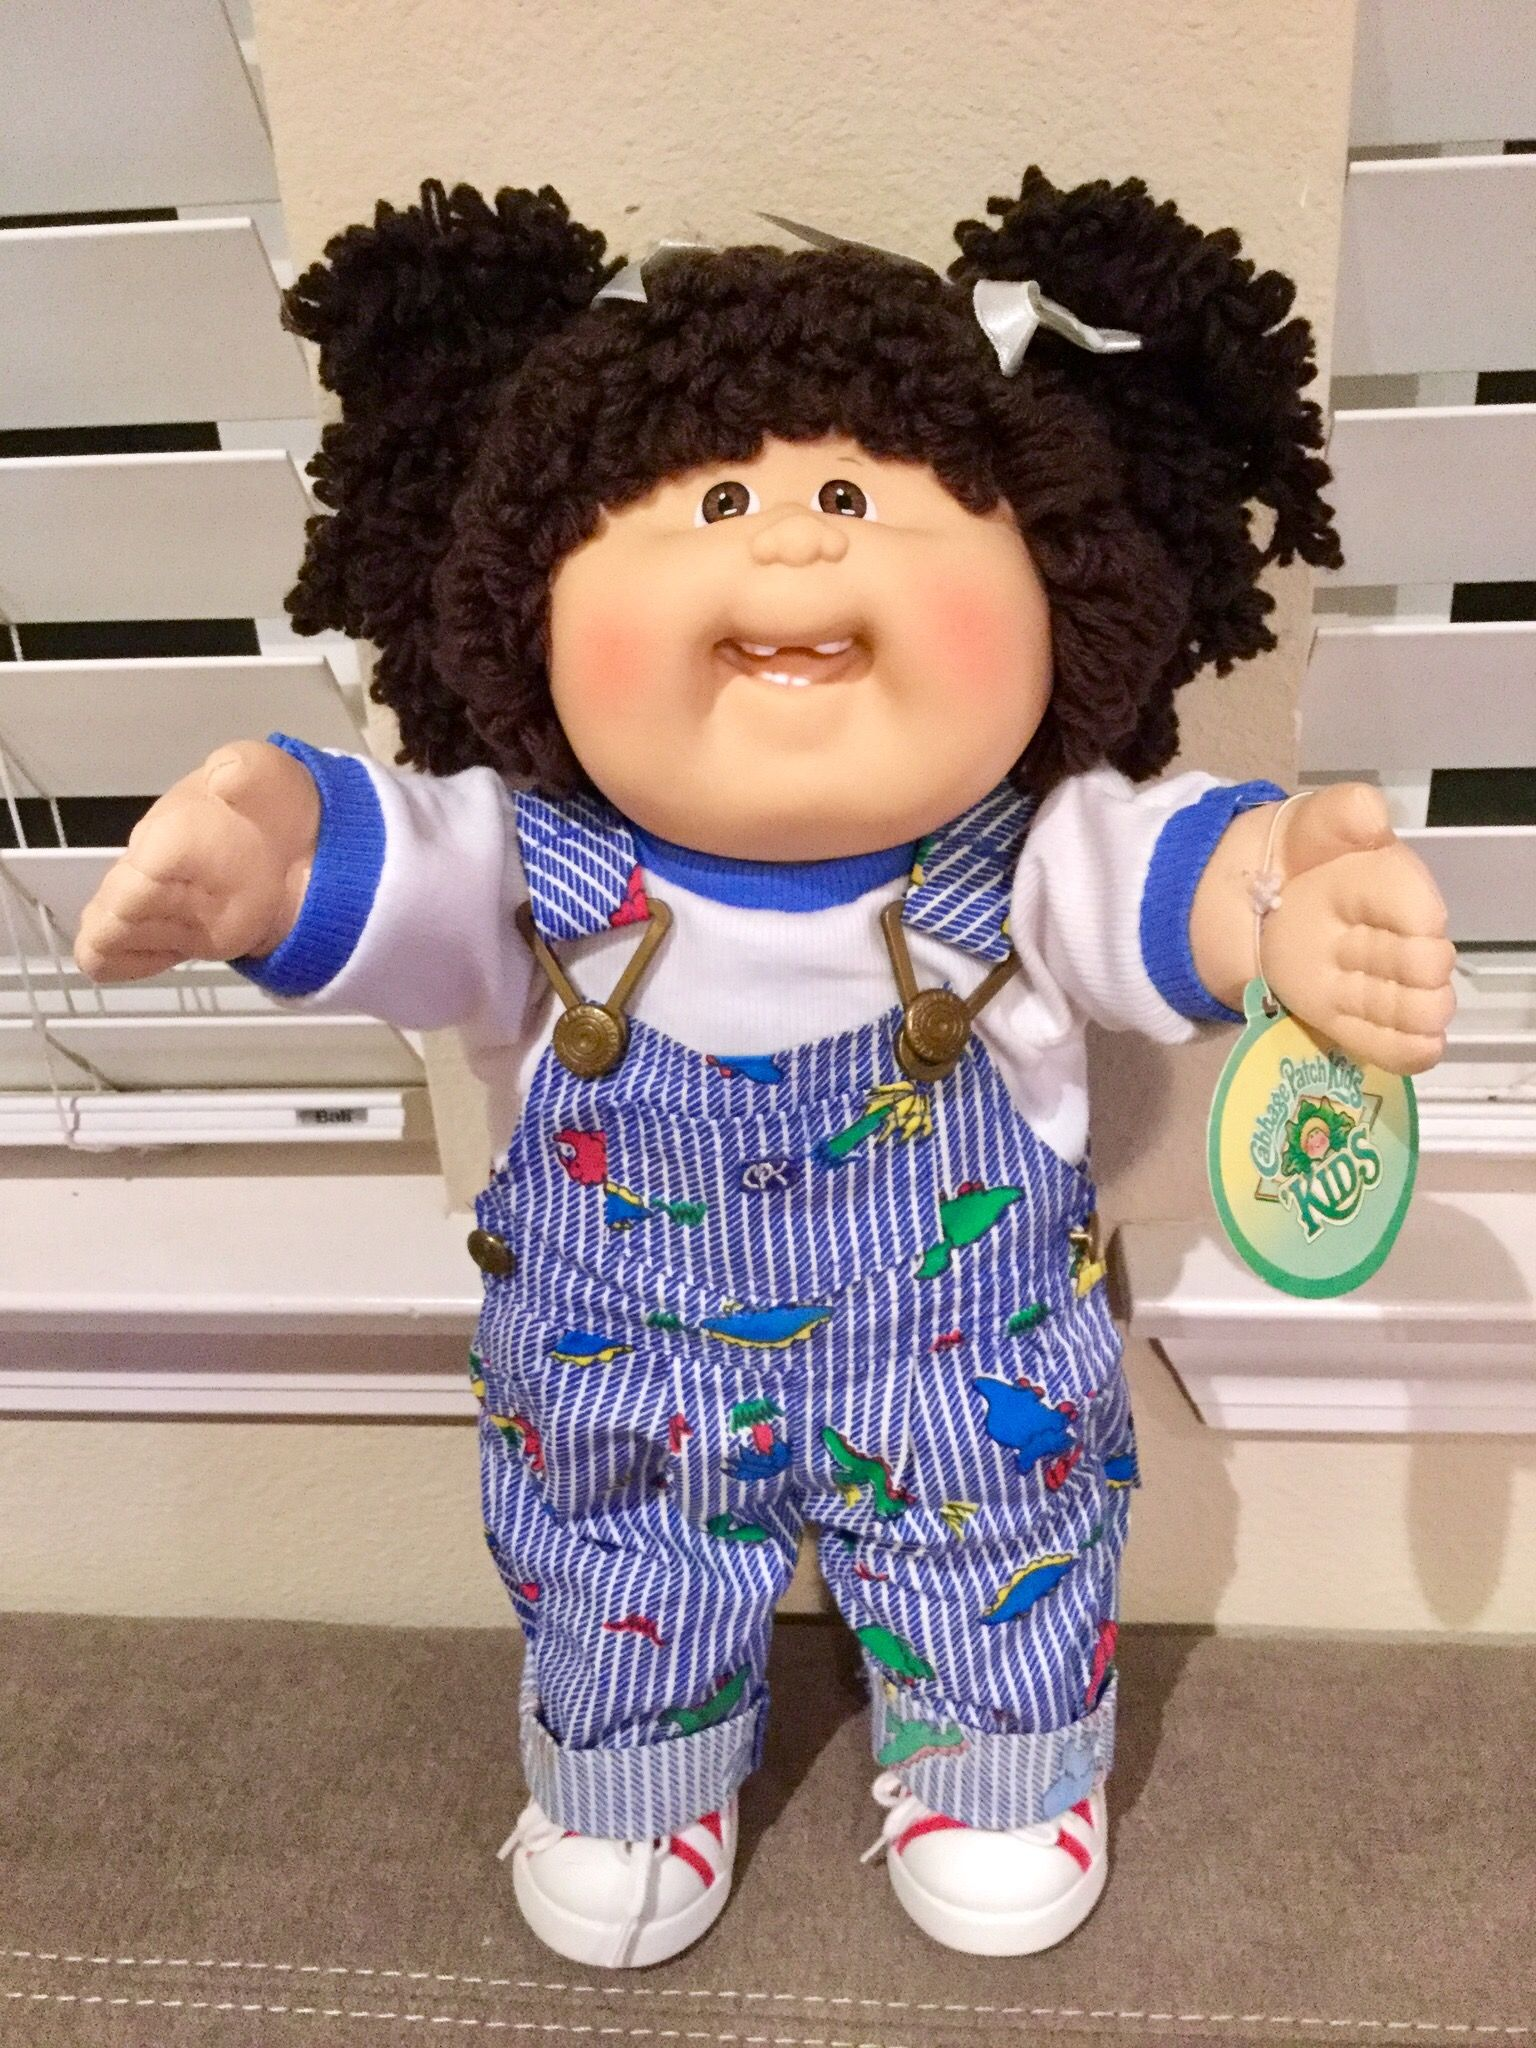 19 Headmold Cabbage Patch Babies Cabbage Patch Dolls Cabbage Patch Kids